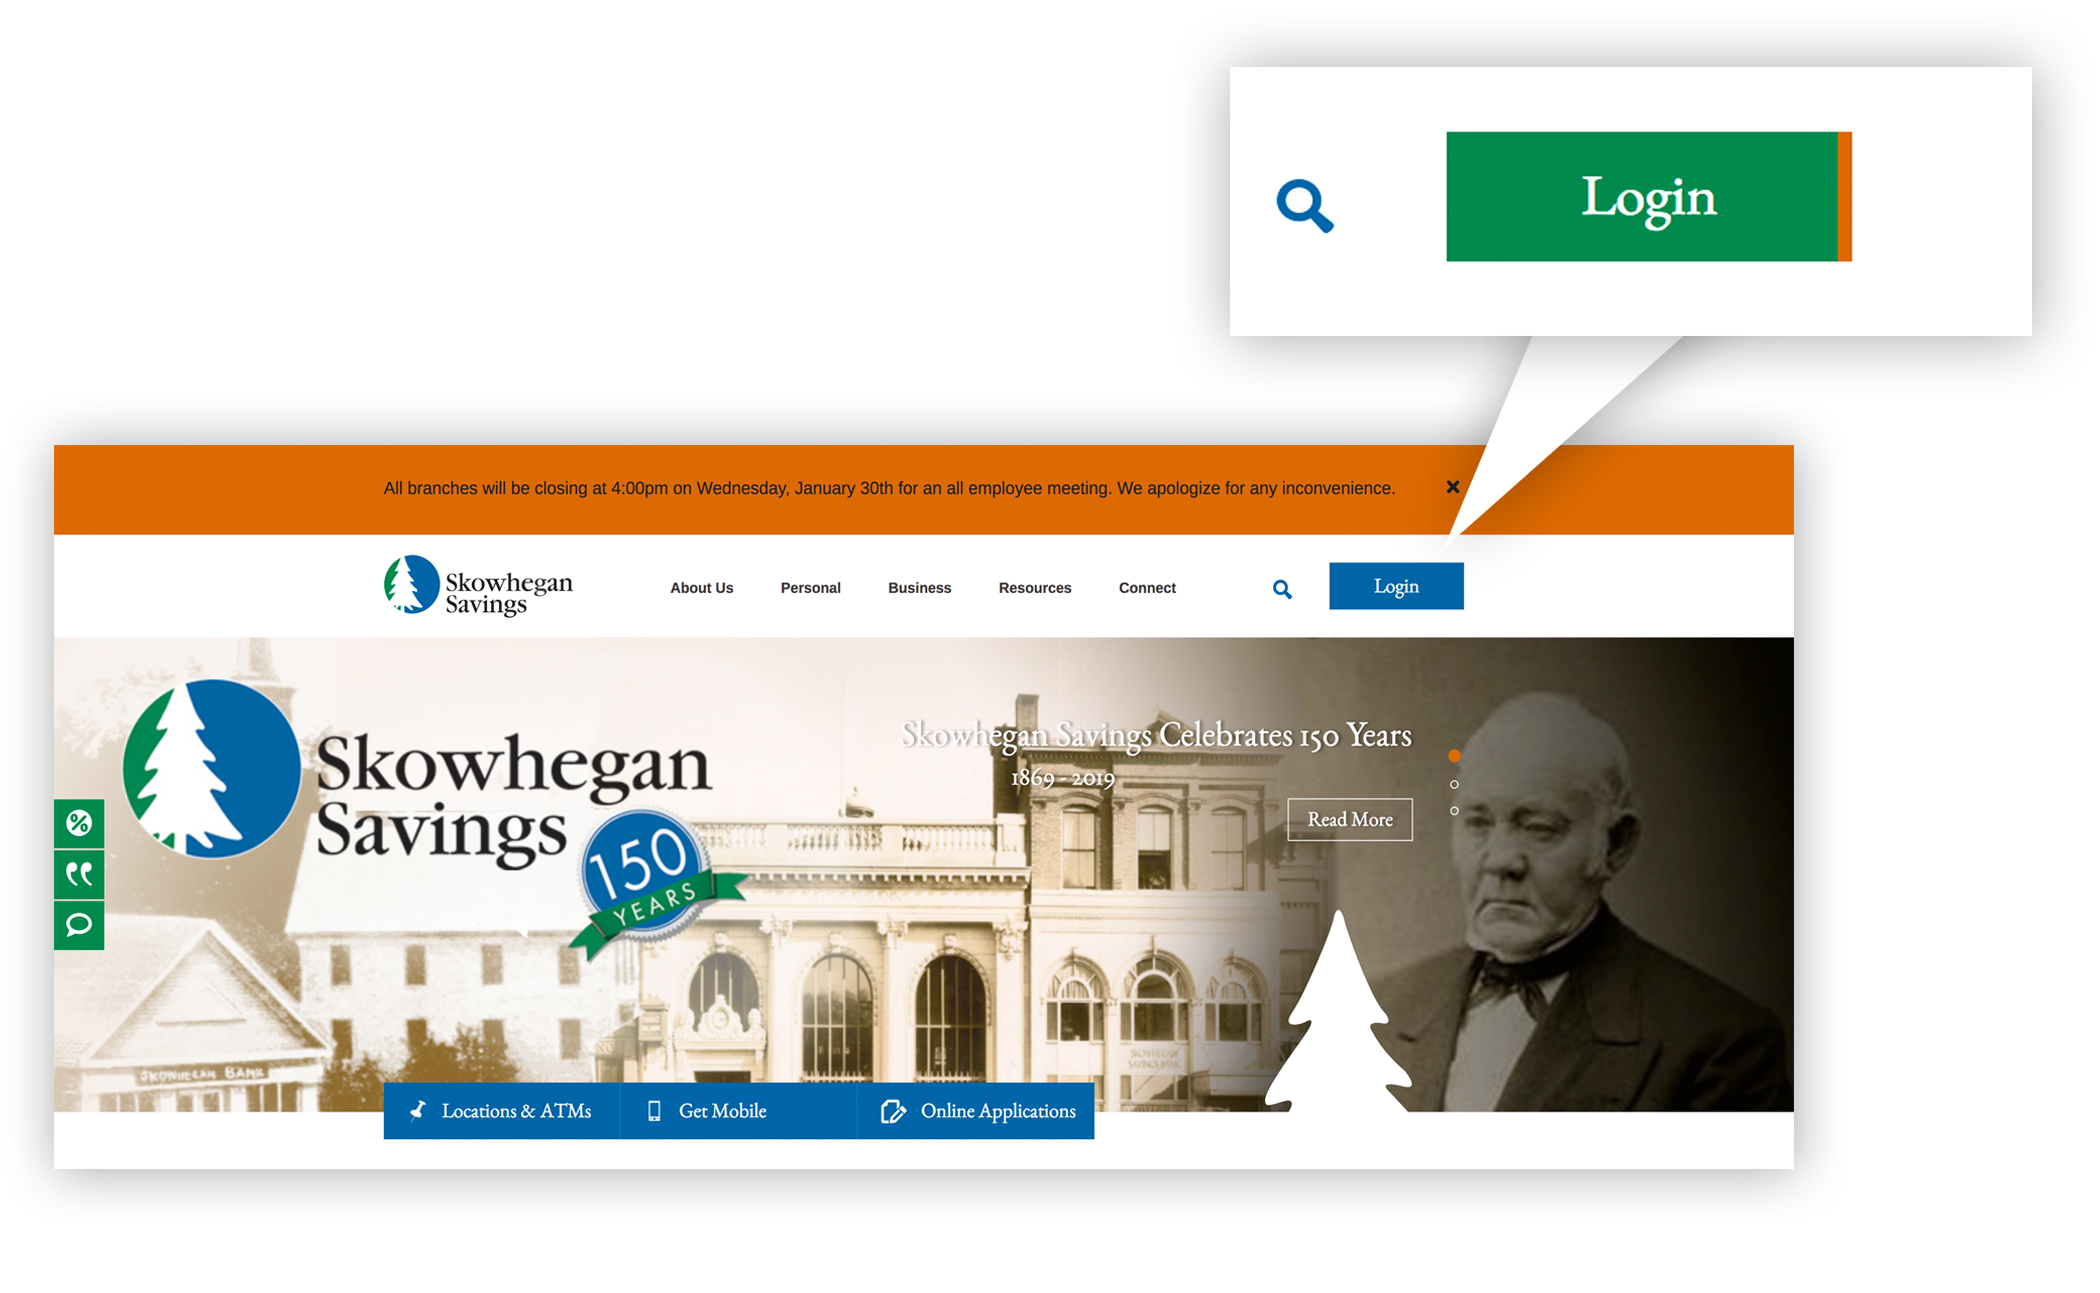 A screenshot of the Skowhegan Savings home page, featuring a look at our online banking login button